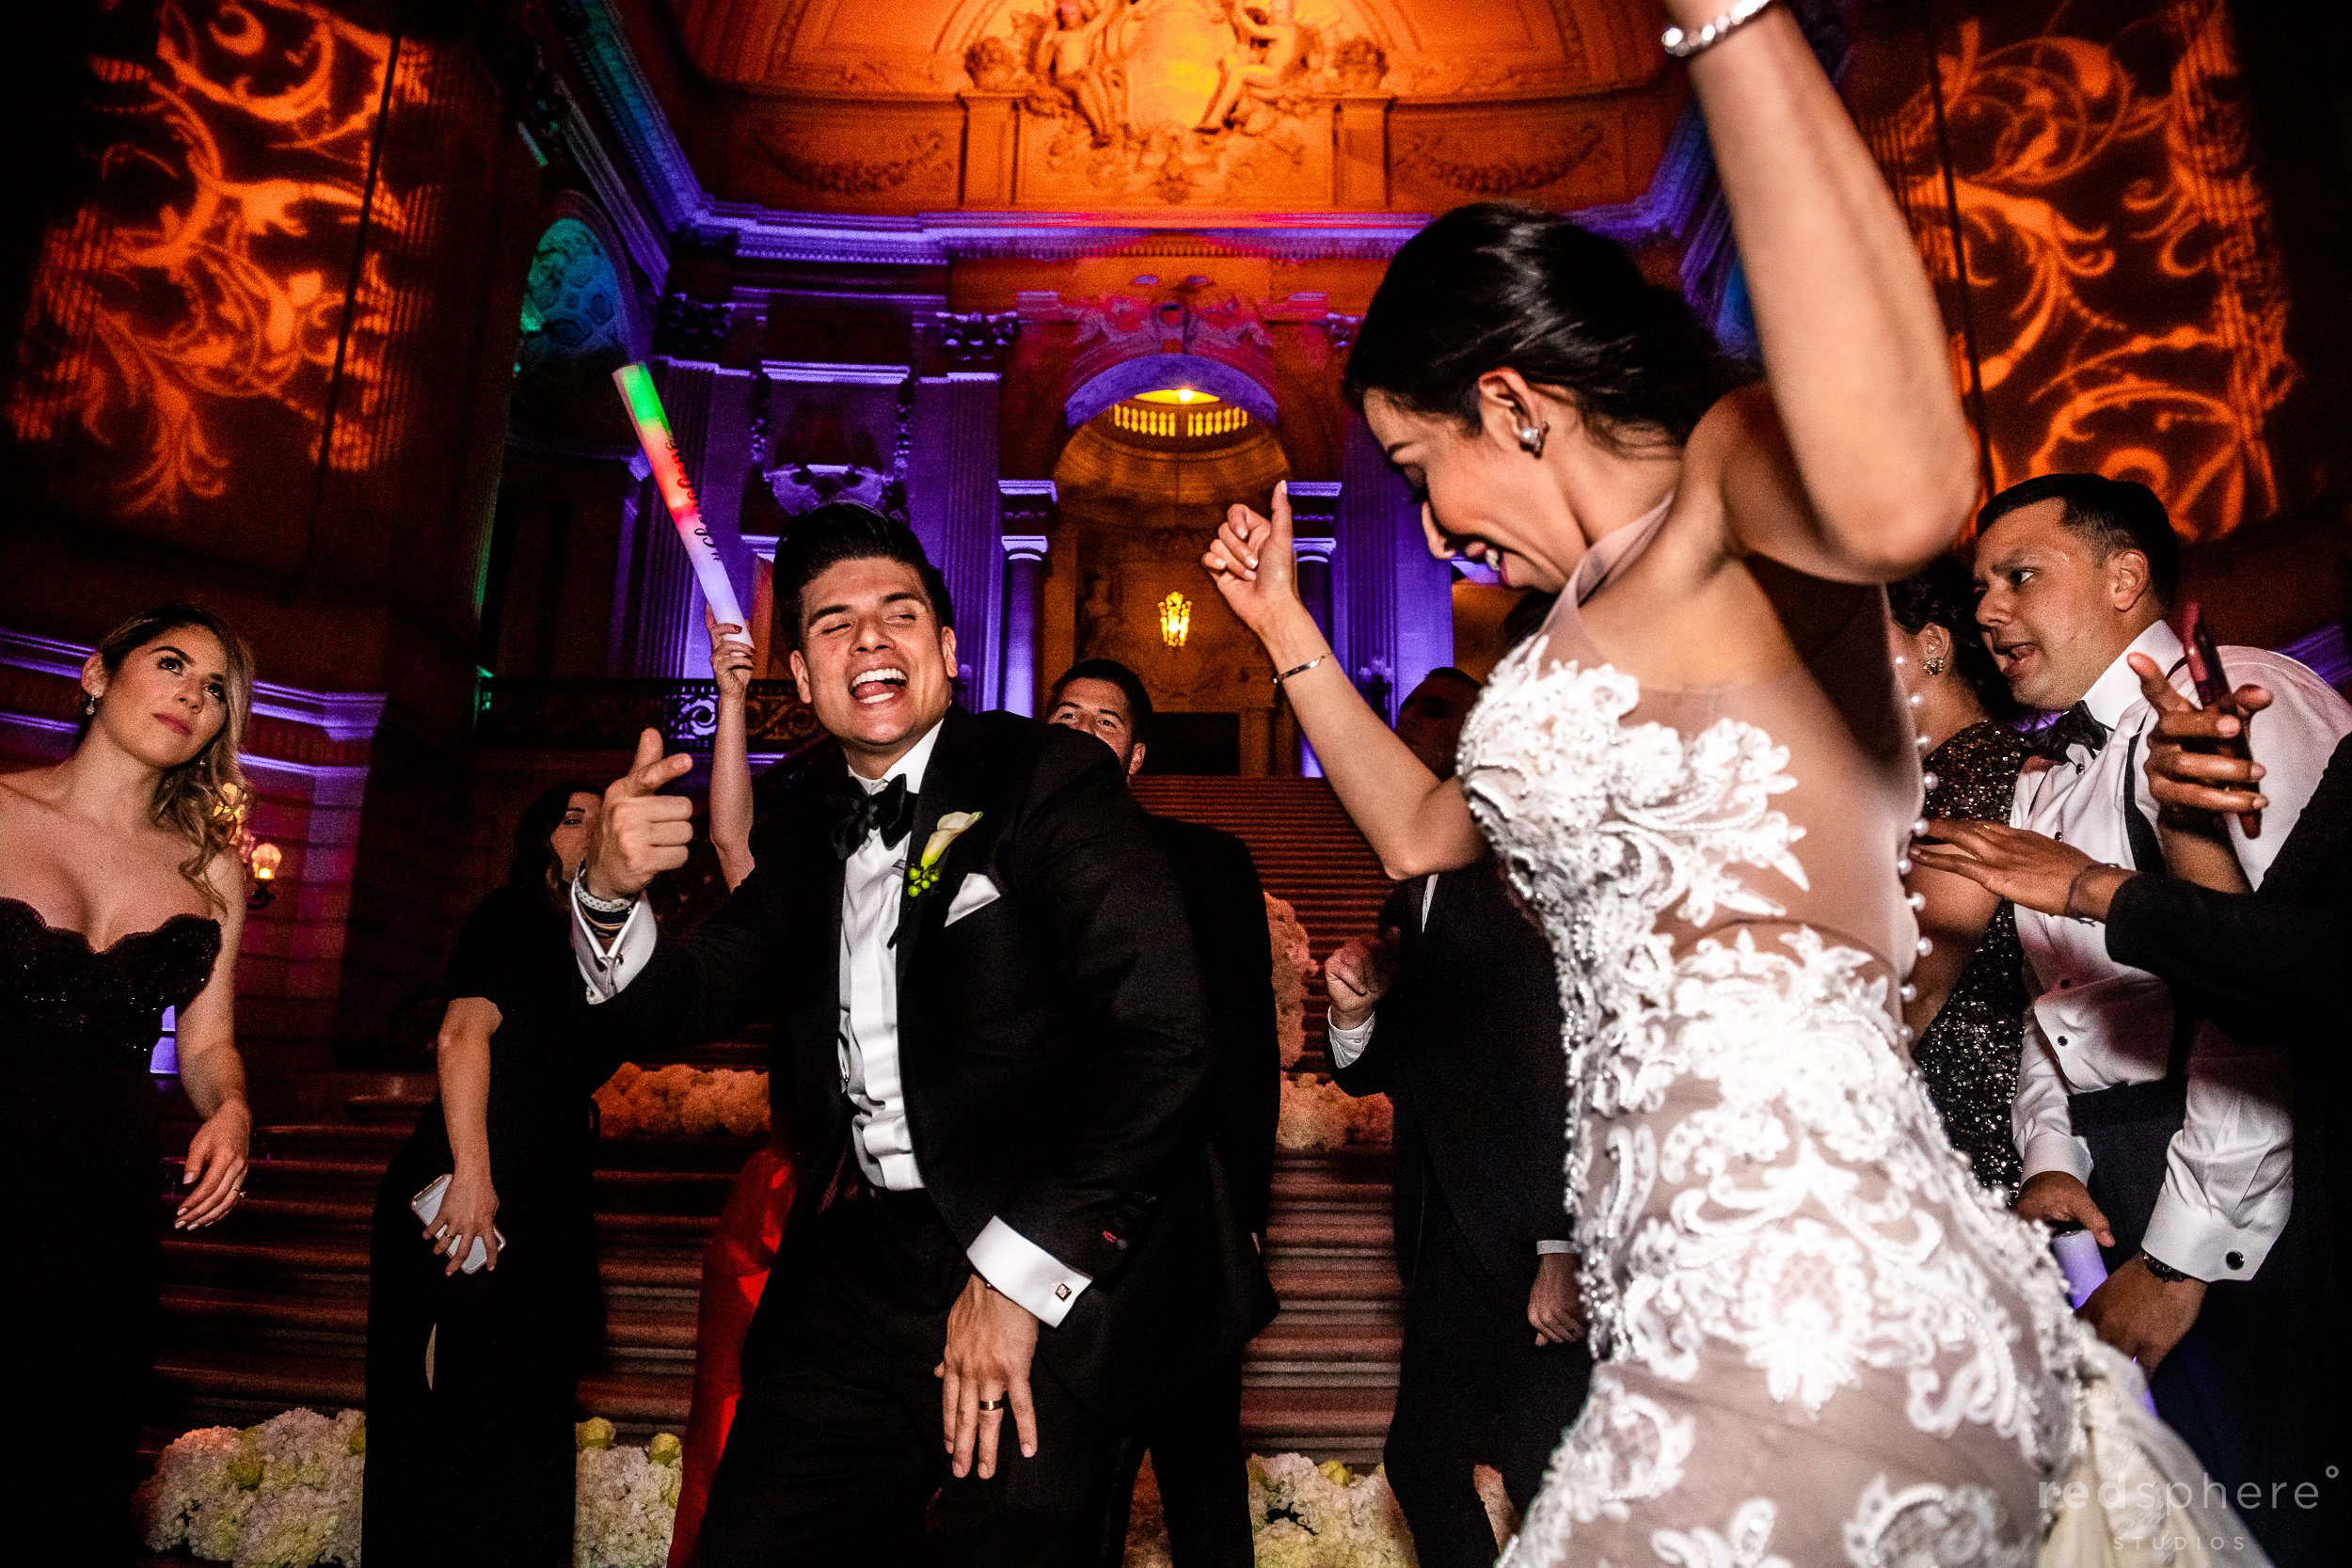 Bride and groom dancing with guests at San Francisco City Hall dance floor